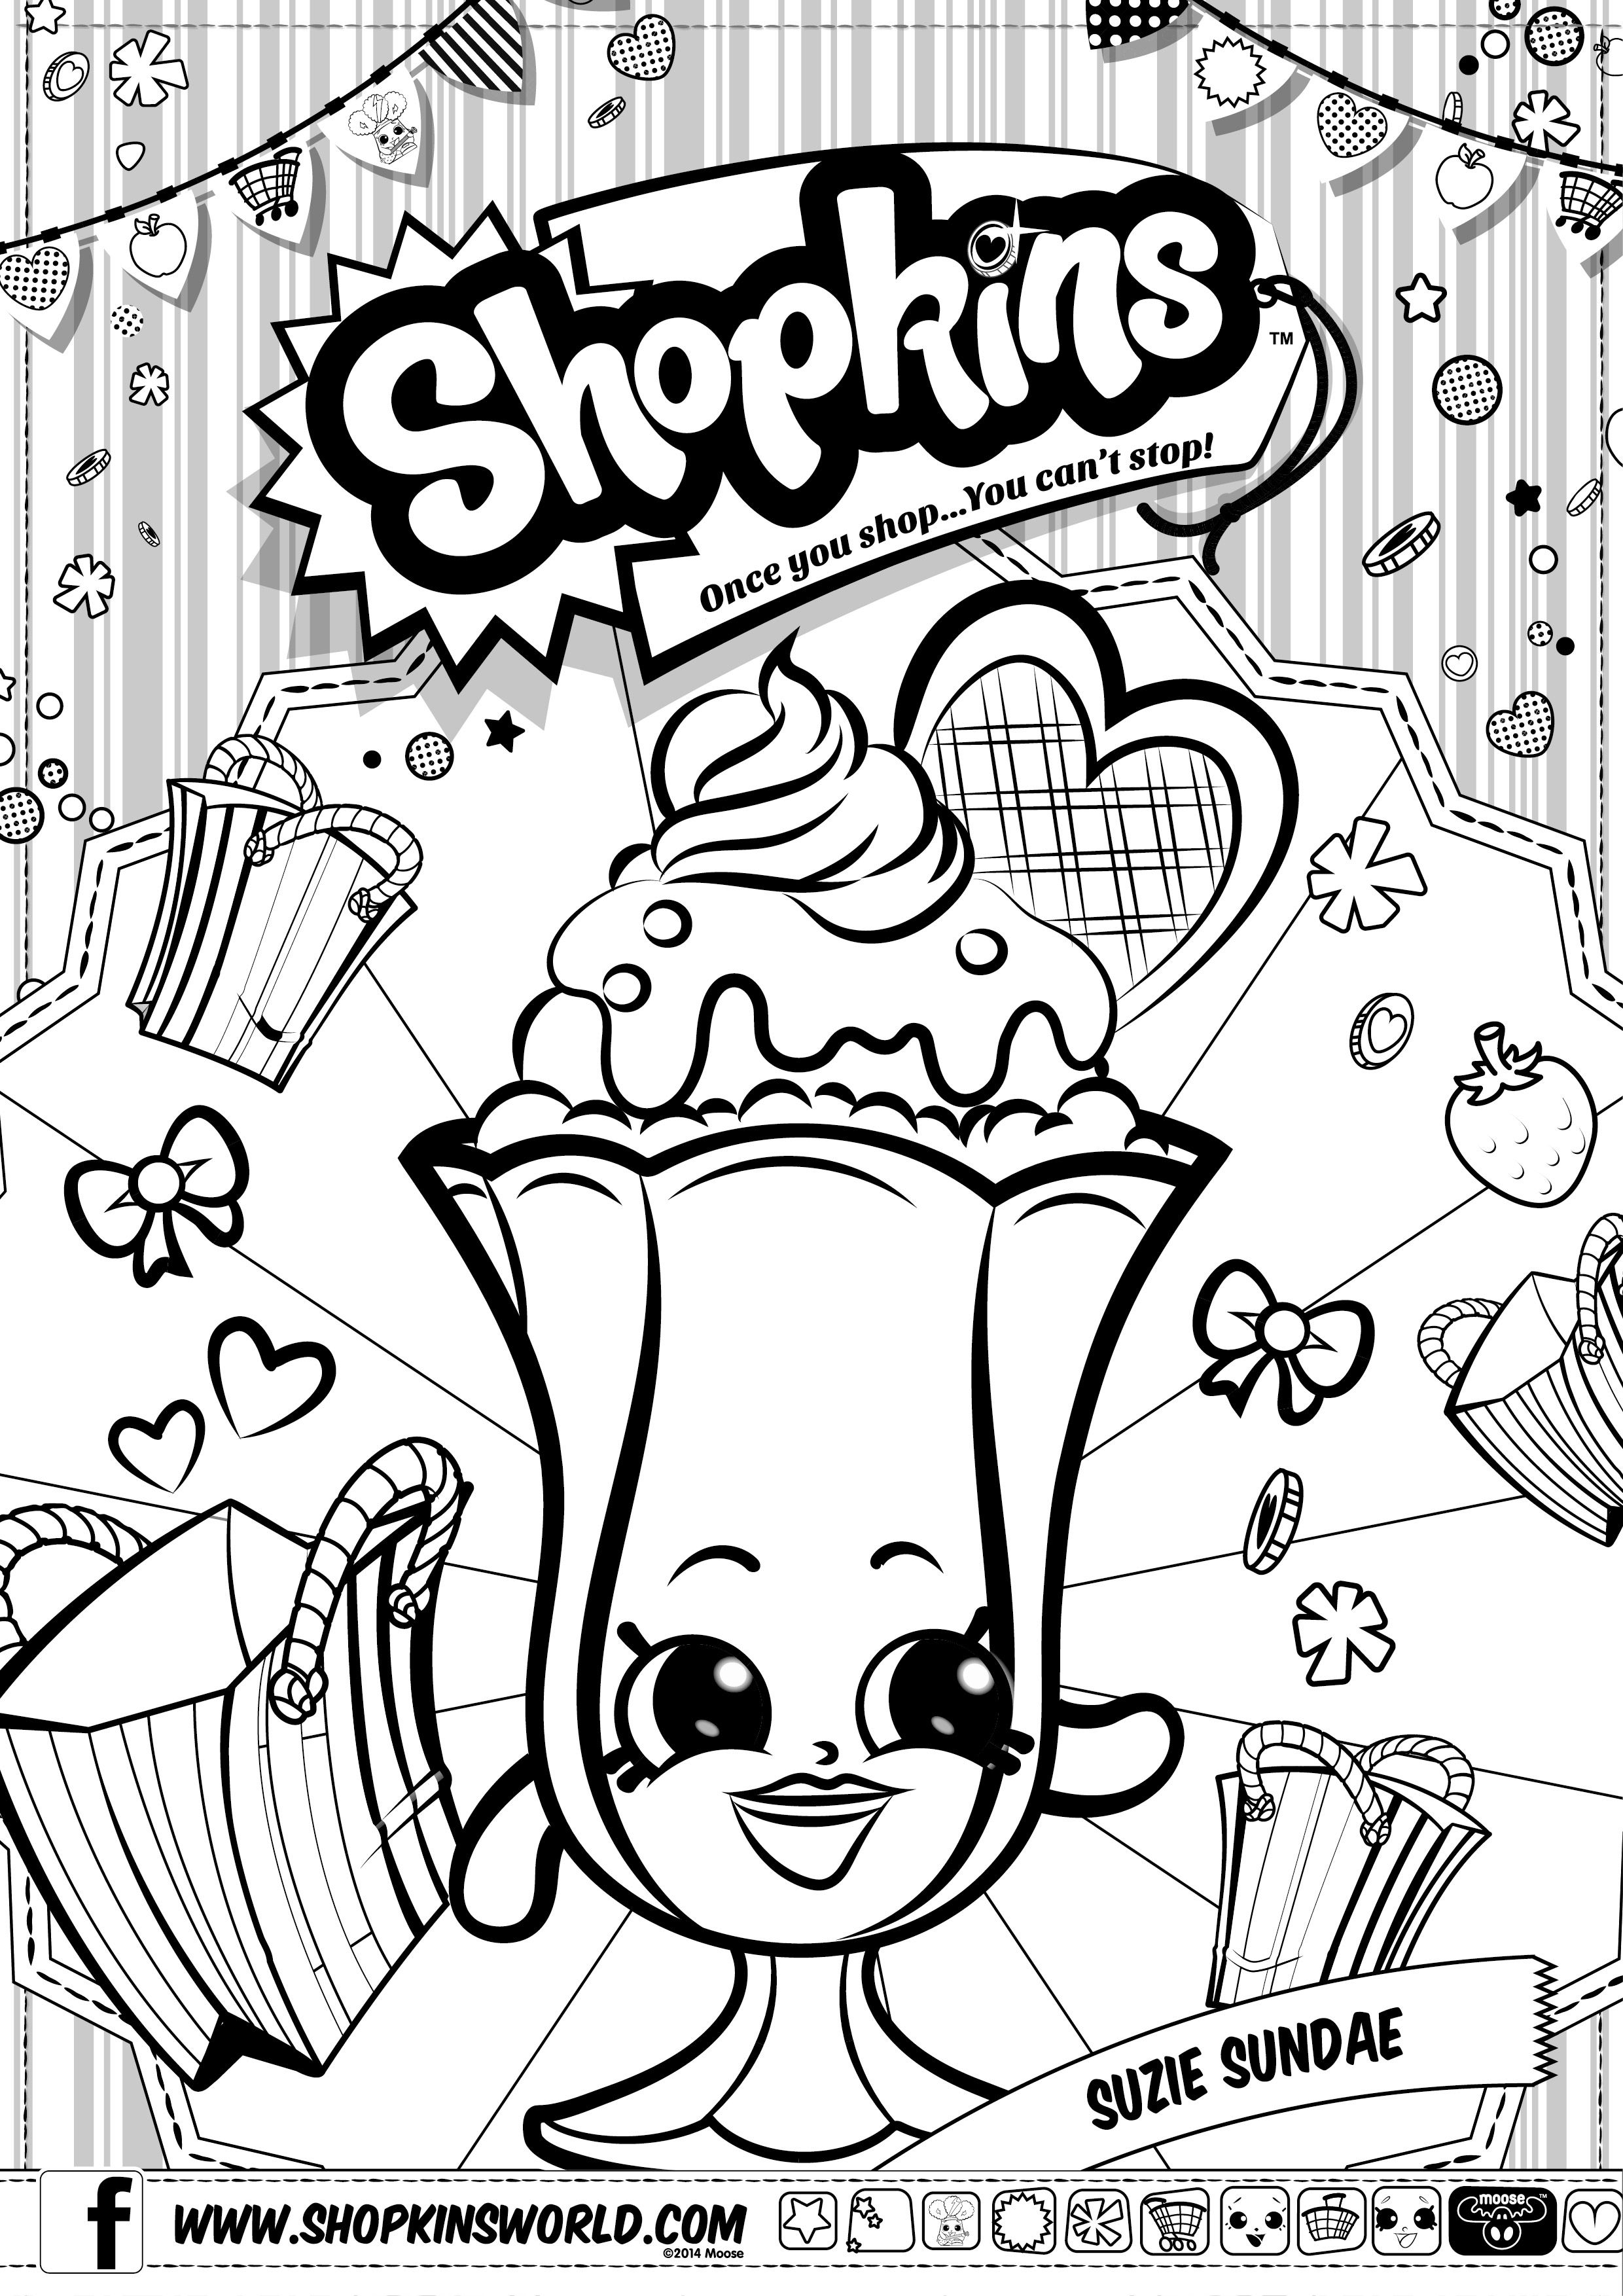 Shopkins Coloring Pages Season 2 Limited Edition Google Search Shopkins Colouring Pages Shopkin Coloring Pages Shopkins